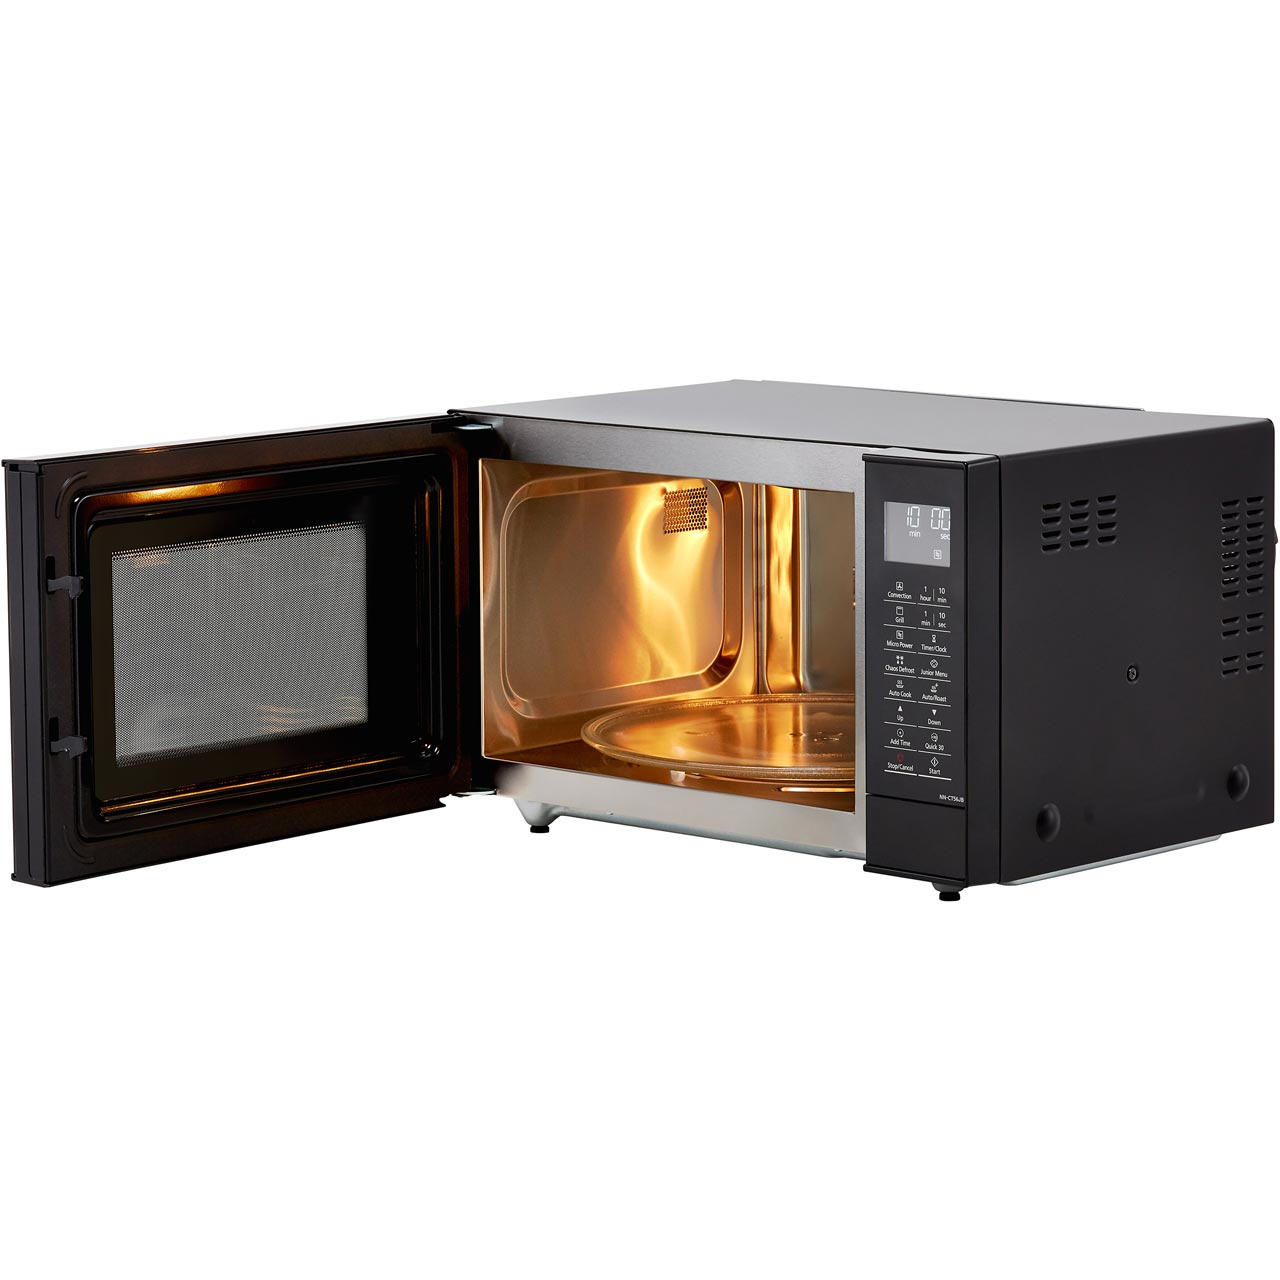 Panasonic NN-CT56JBBPQ 1000 Watt Microwave Black New From